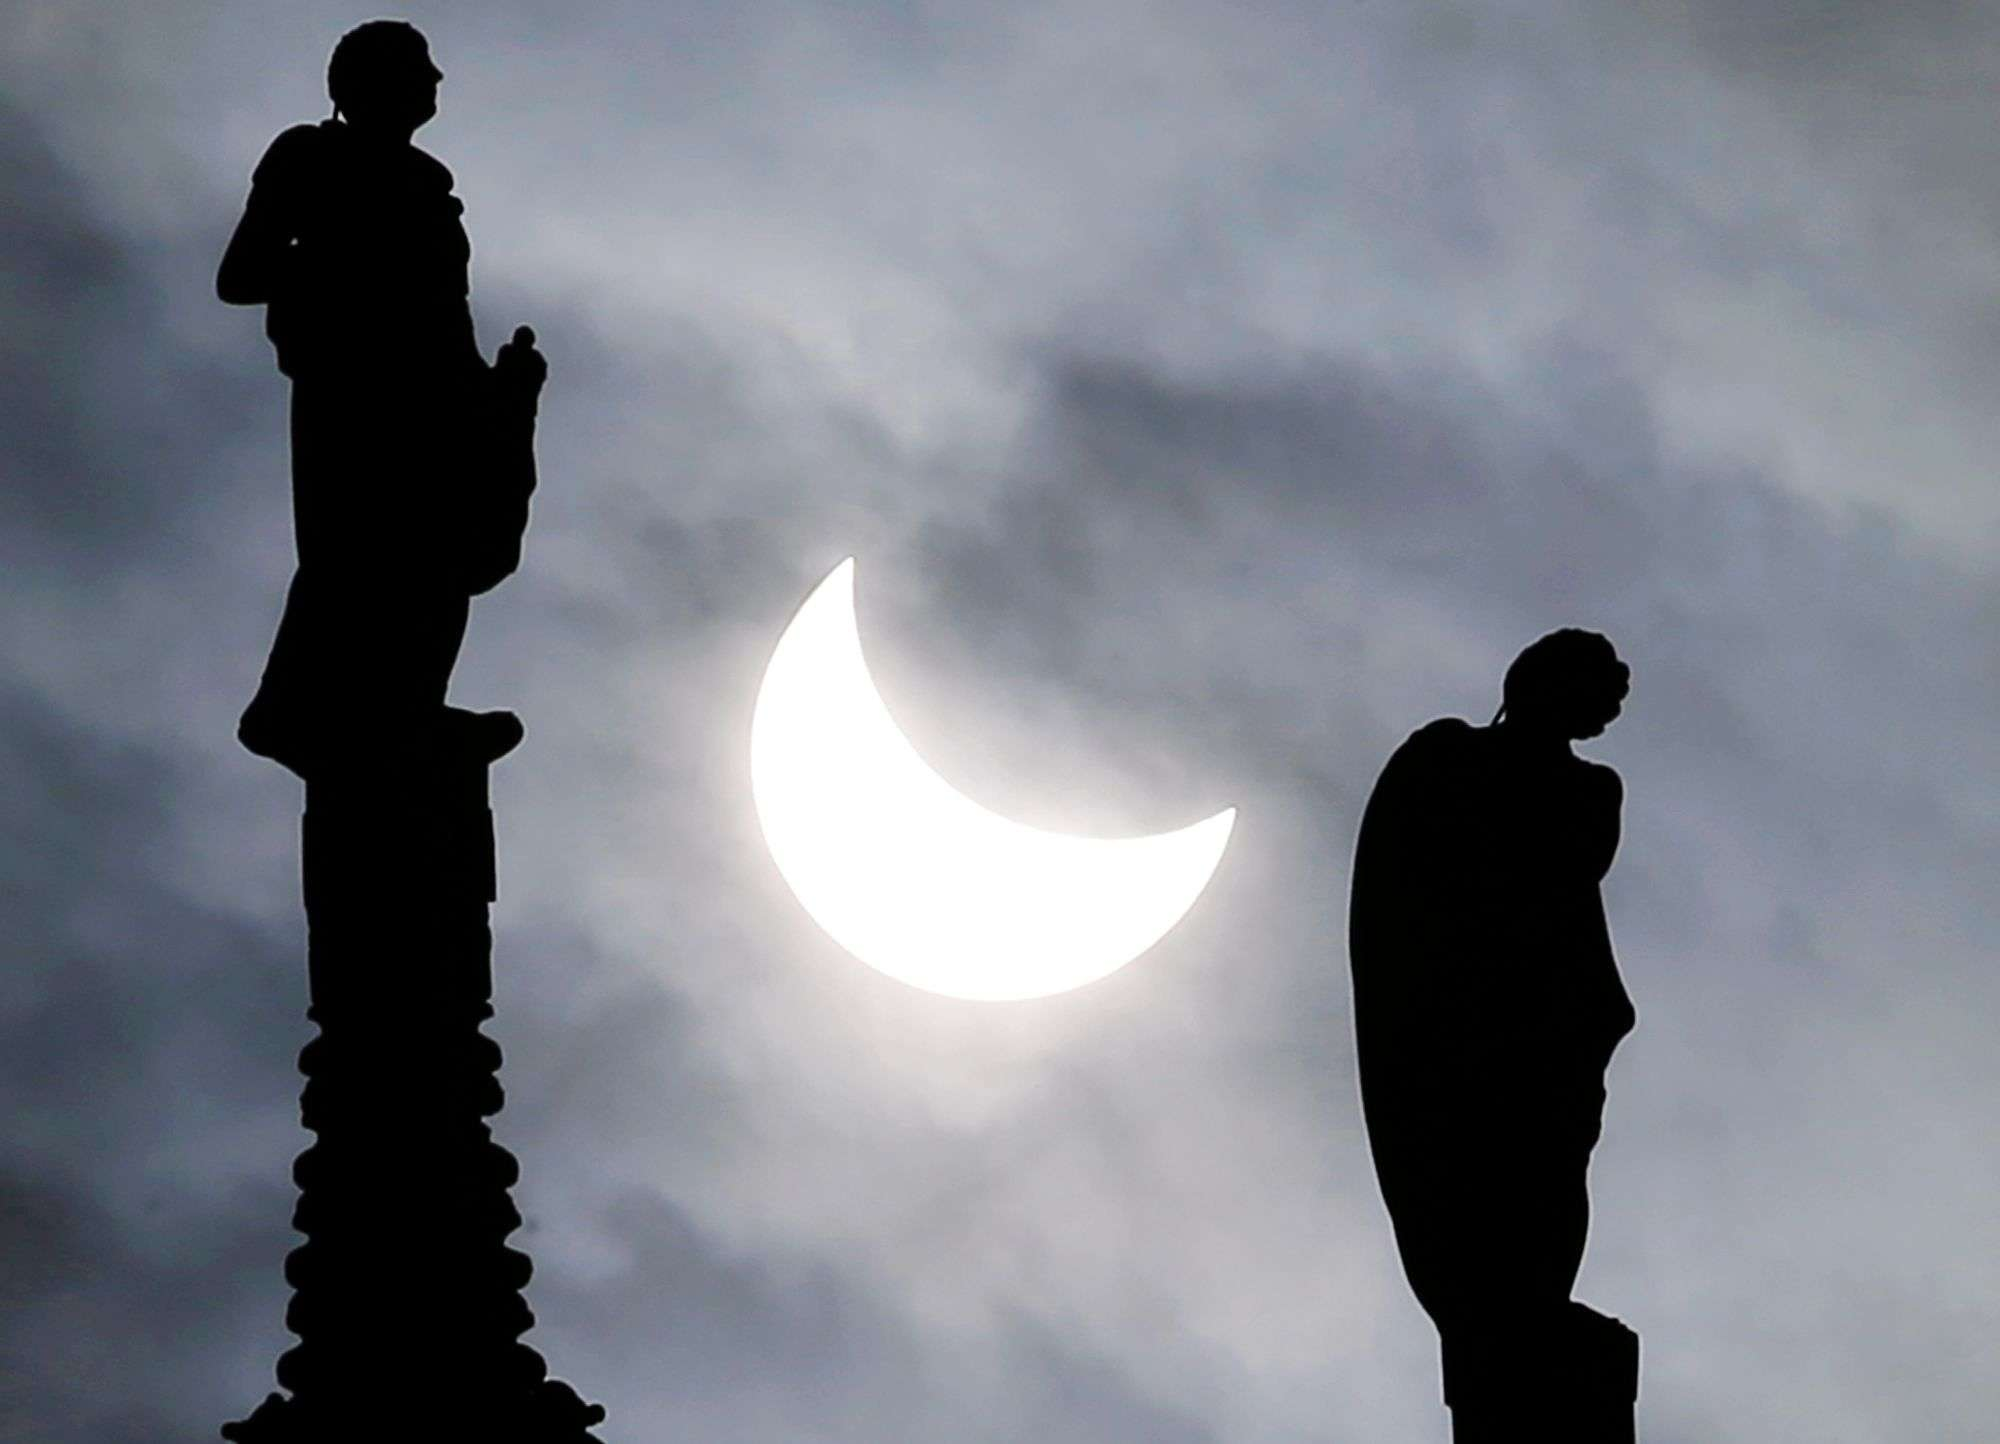 The sun is seen during an eclipse between two statues of the Duomo gothic cathedral in Milan, Italy. (AP Photo/Antonio Calanni)